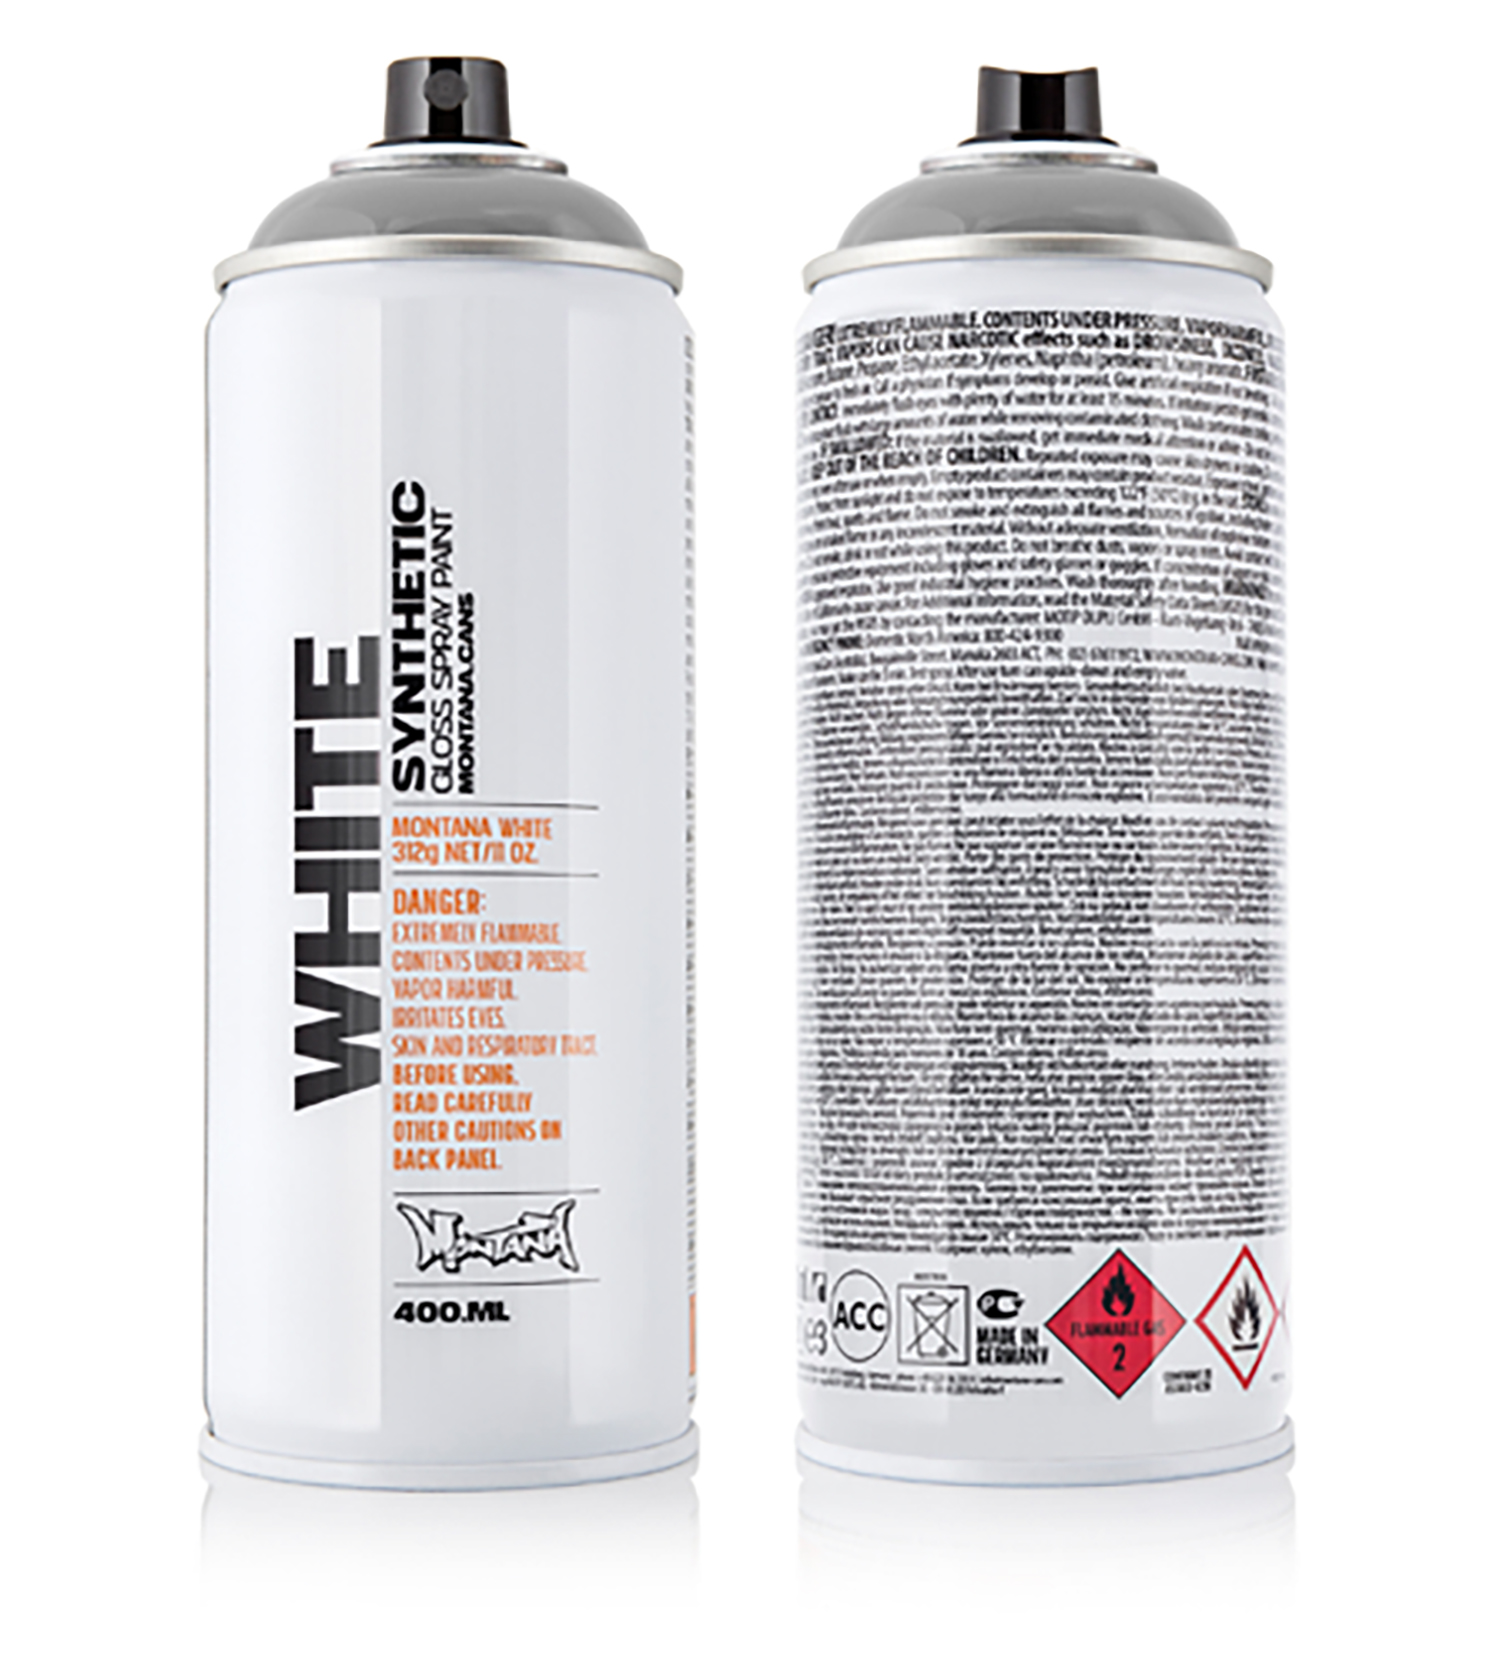 MONTANA-WHITE-SPRAY-400ML-7050